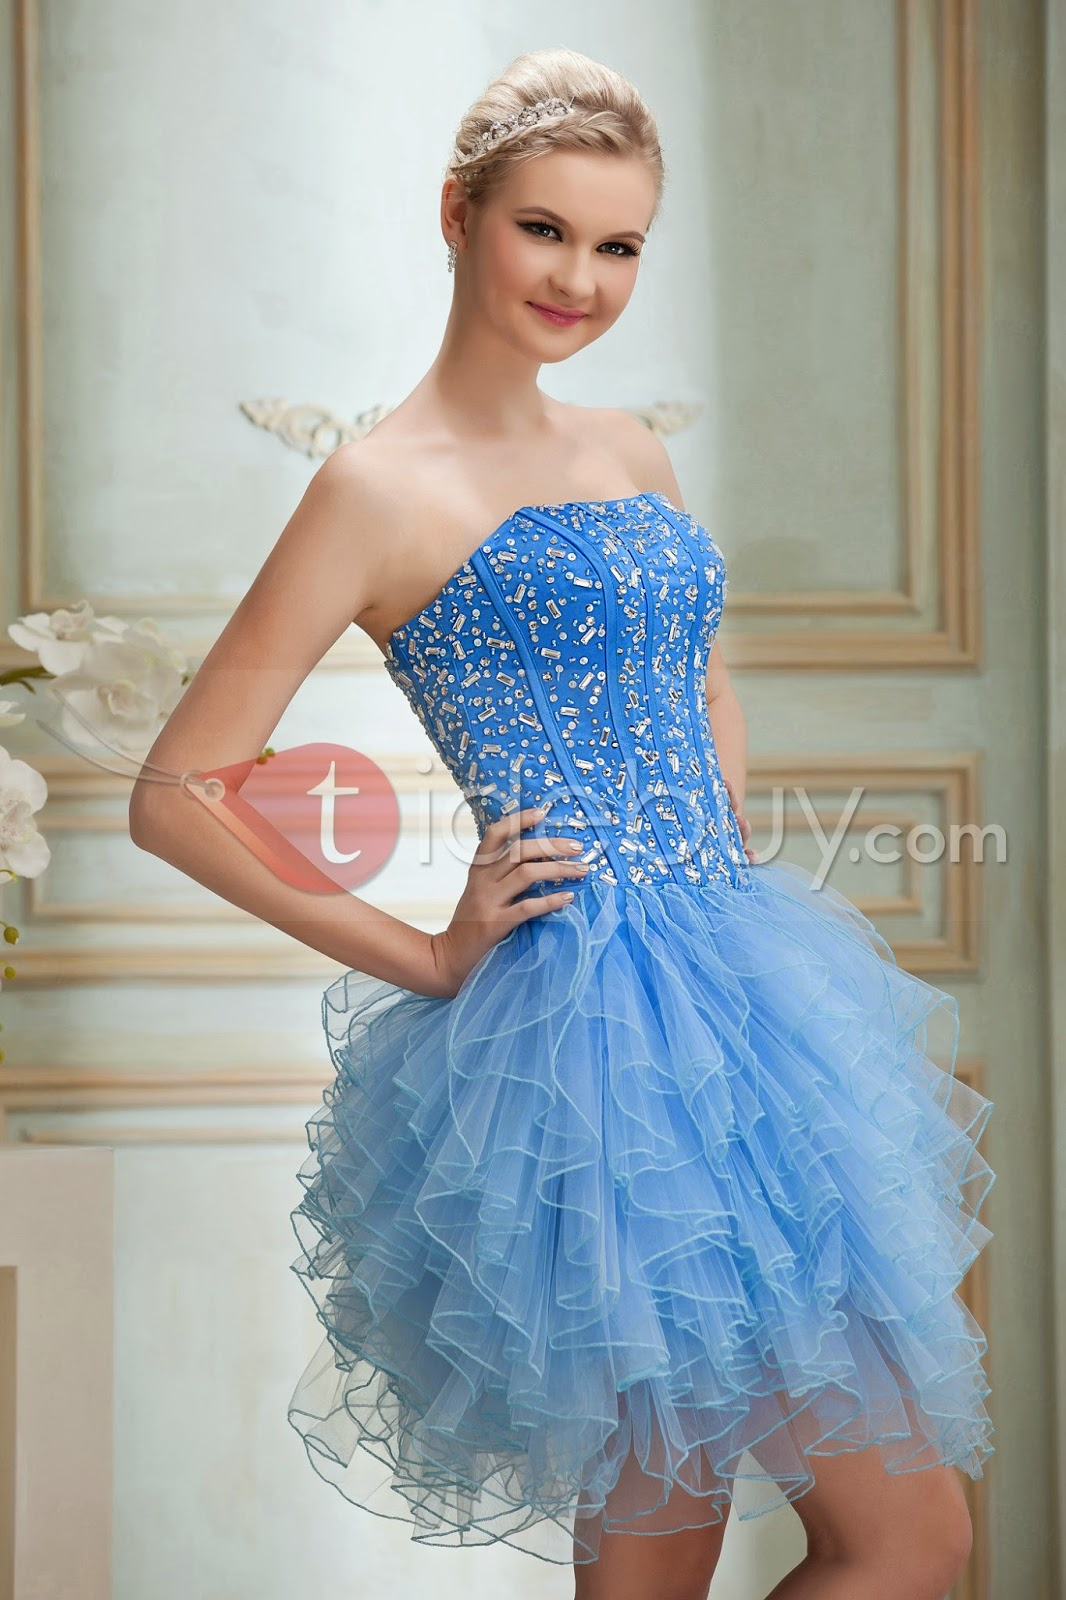 Fabulous A-Line Strapless Beading Ruffles Lace-up Short Yana's Prom/Homecoming Dress